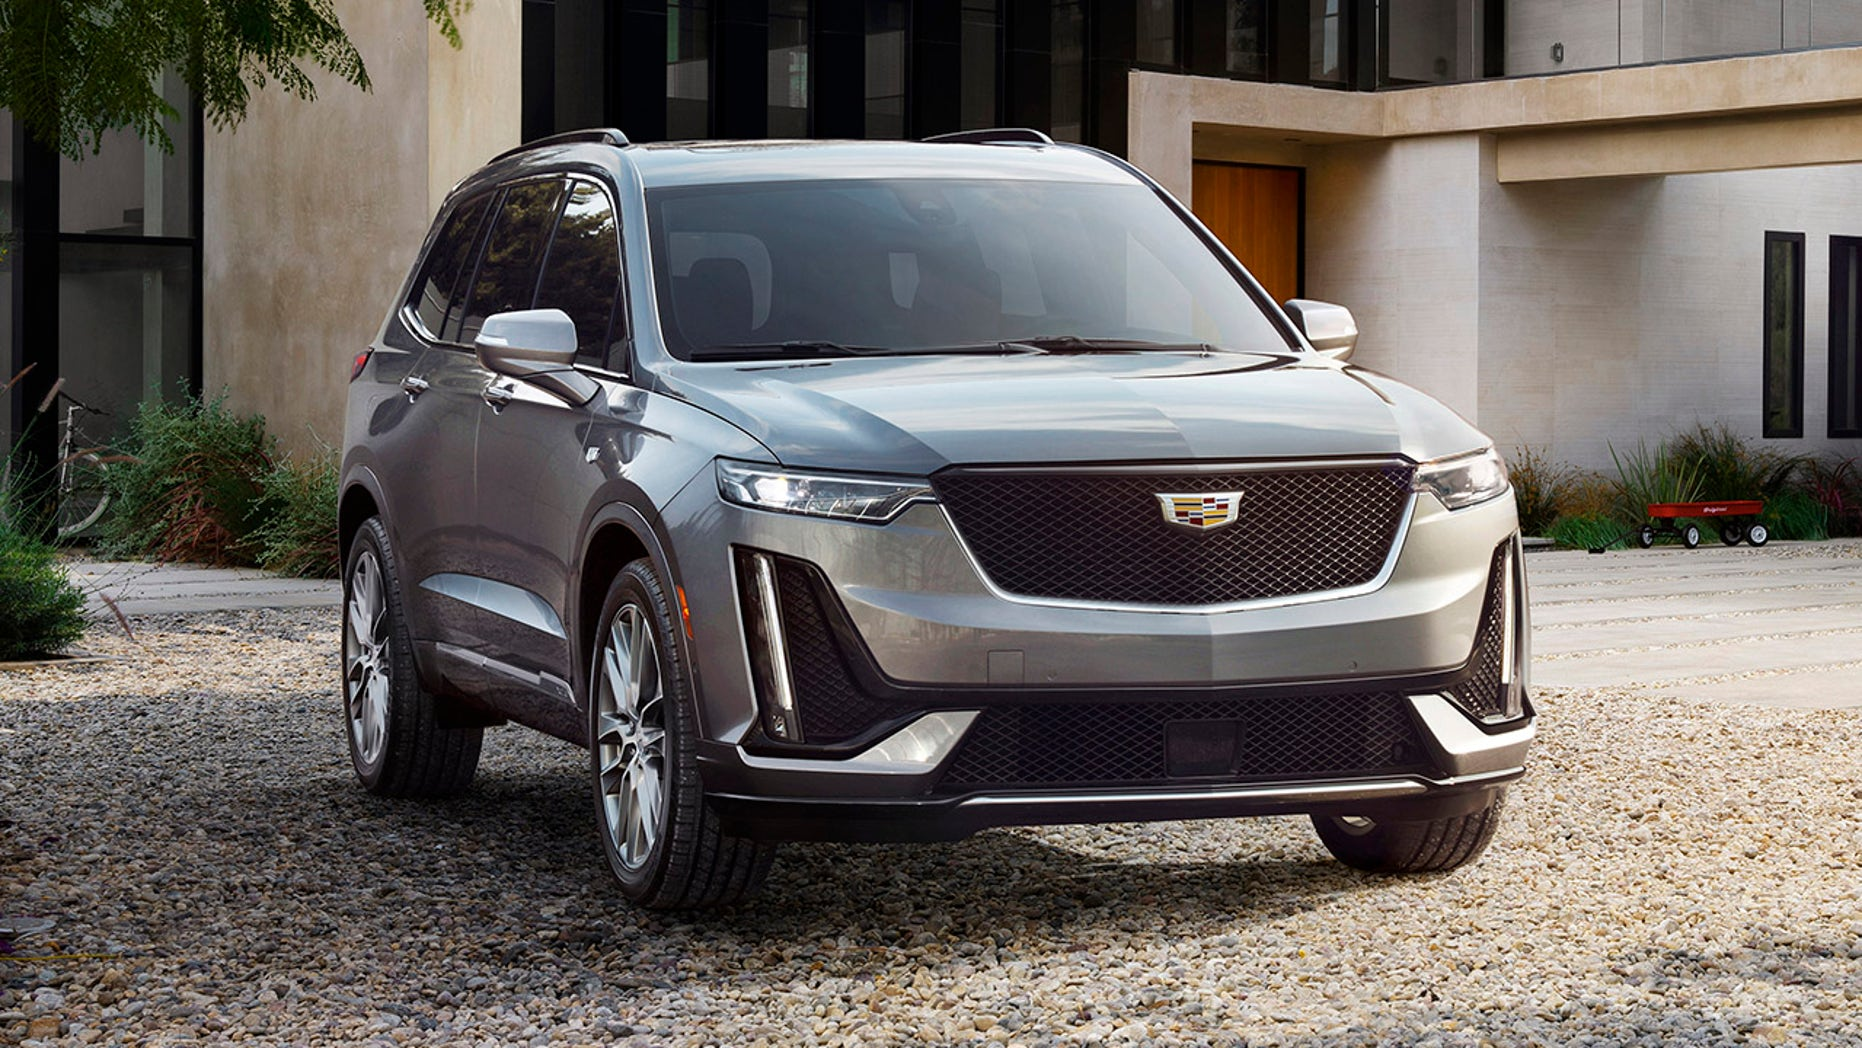 This is Cadillac's first fully electric auto